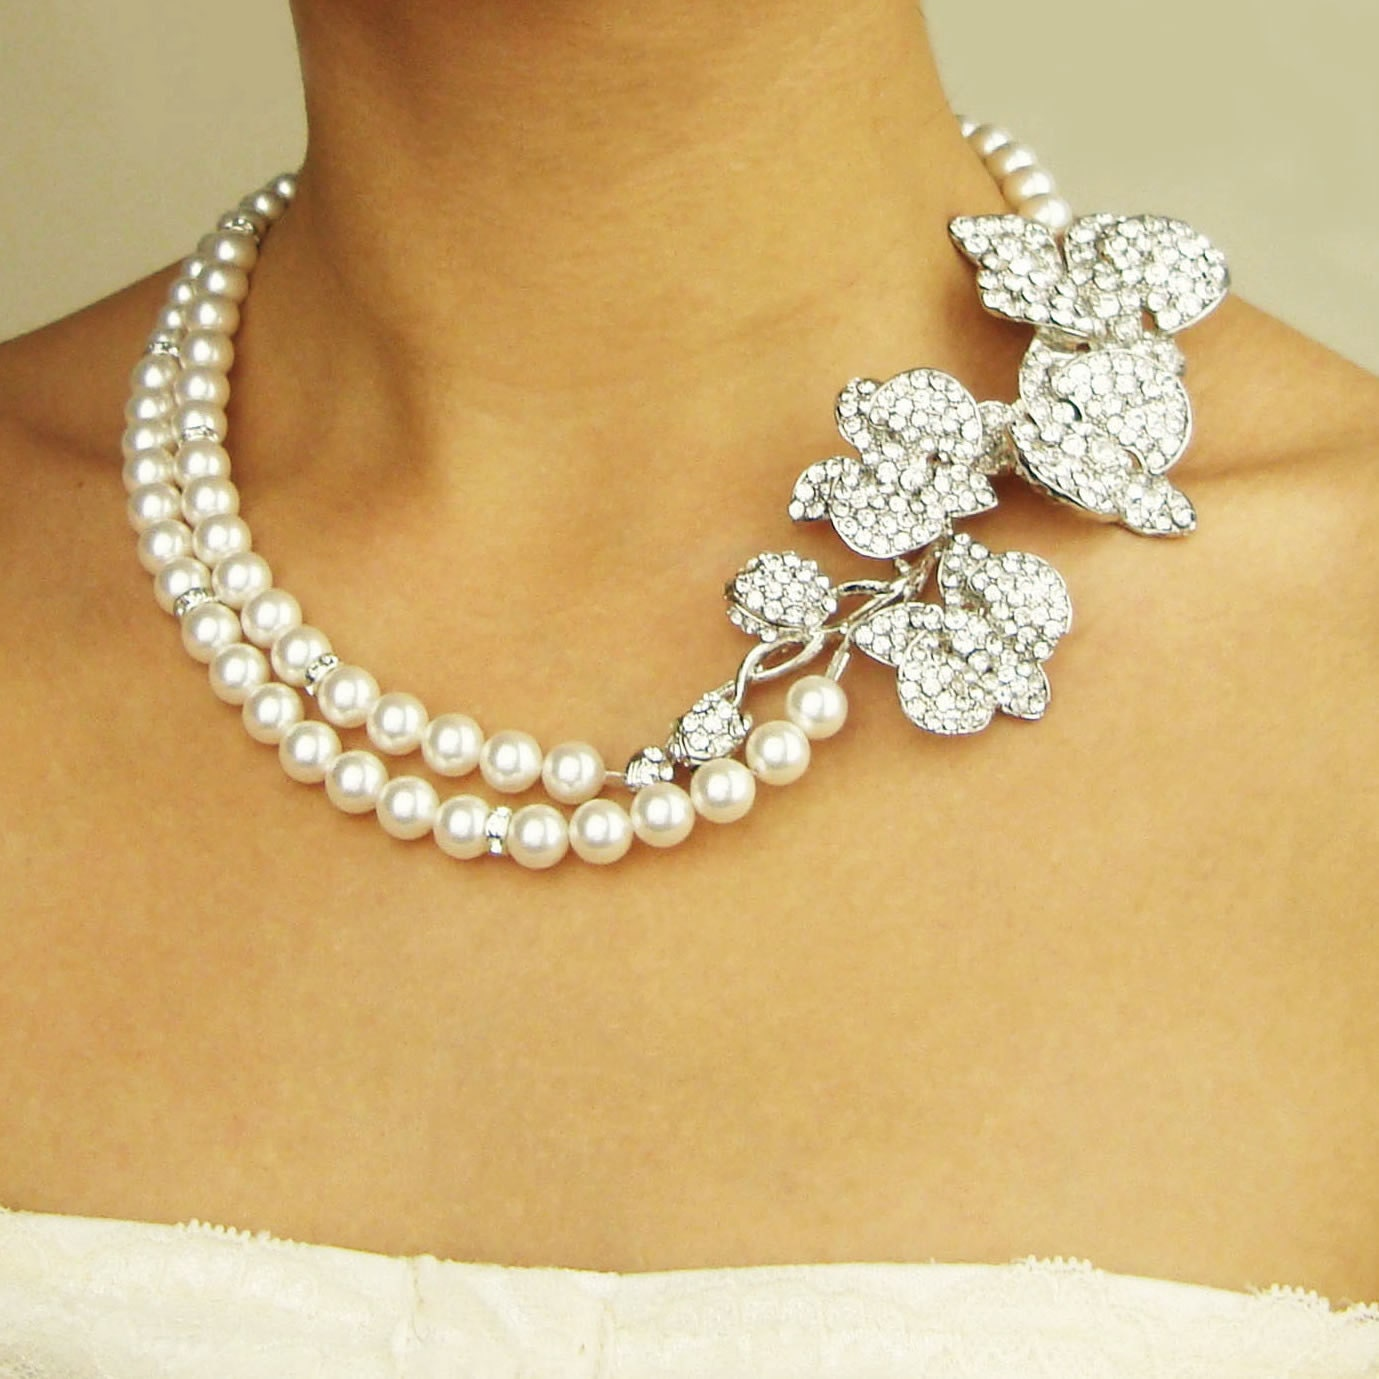 Orchid Bridal Necklace, Statement Pearl Bridal Wedding Necklace, Vintage Style Bridal Jewelry, Crystal Orchids Flower Necklace, ORCHID BLOOM